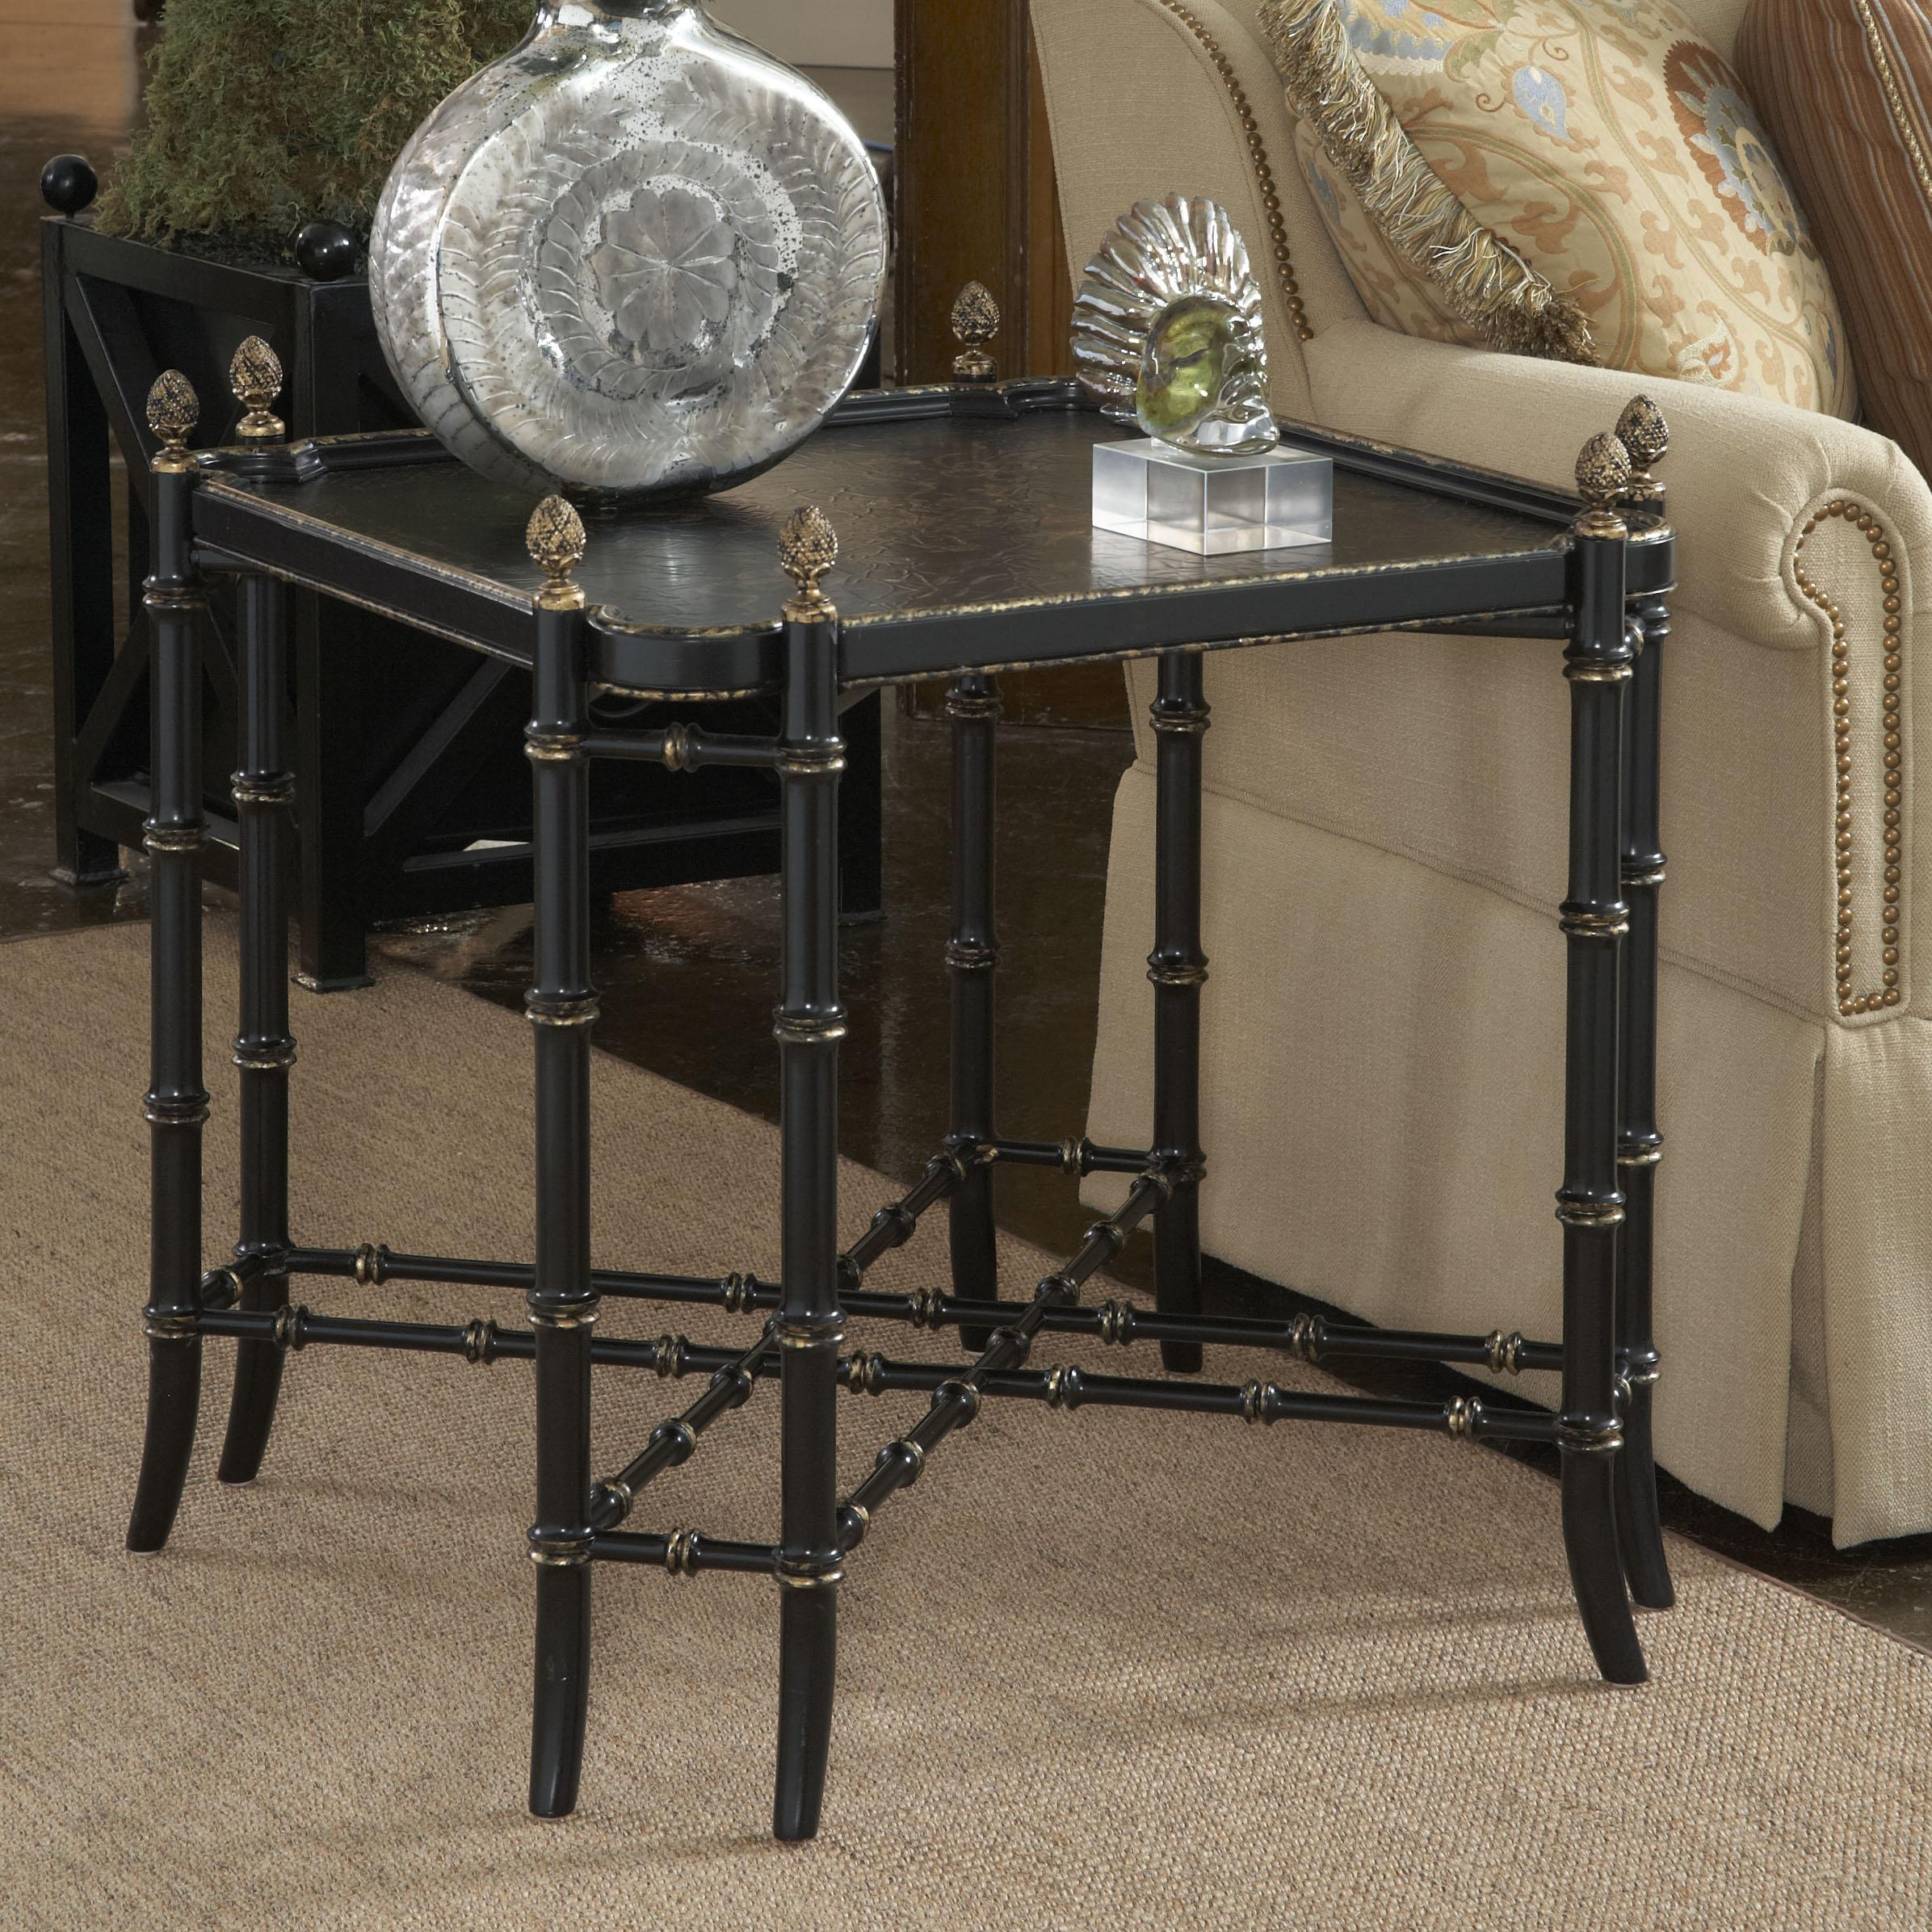 Belfort Signature Belmont New London Chinoiserie Lamp Table - Item Number: 1020-974